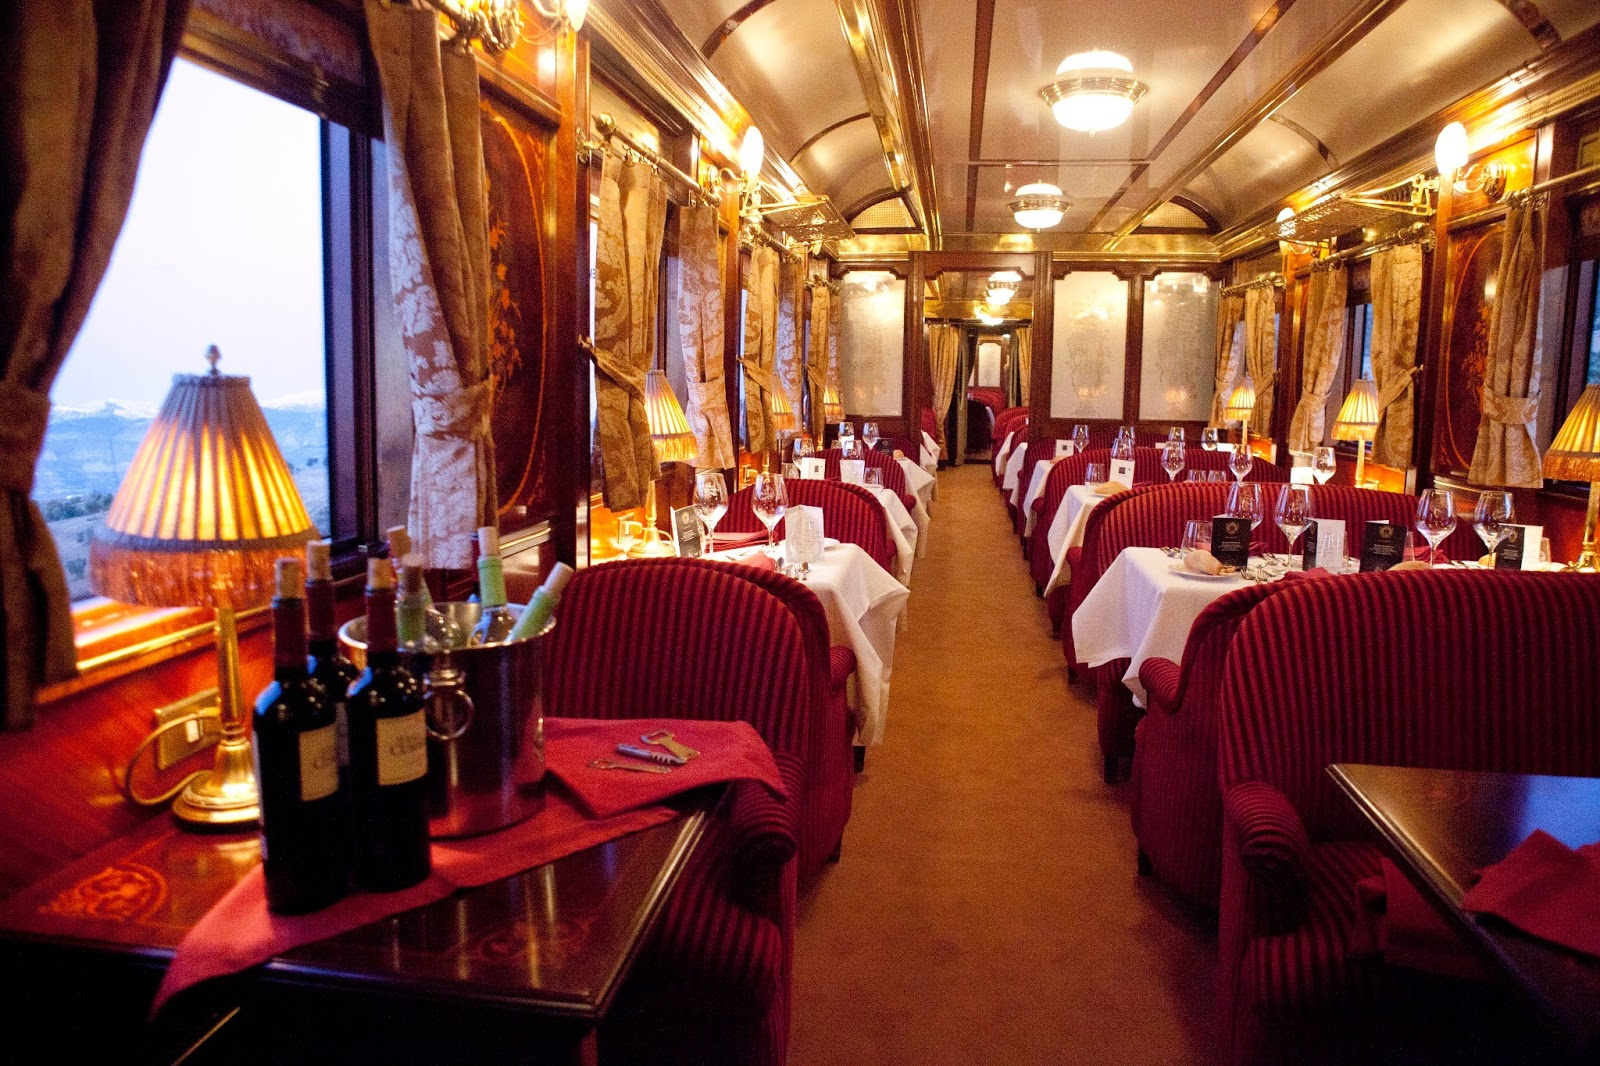 Pacific Express – Where your dreams came true